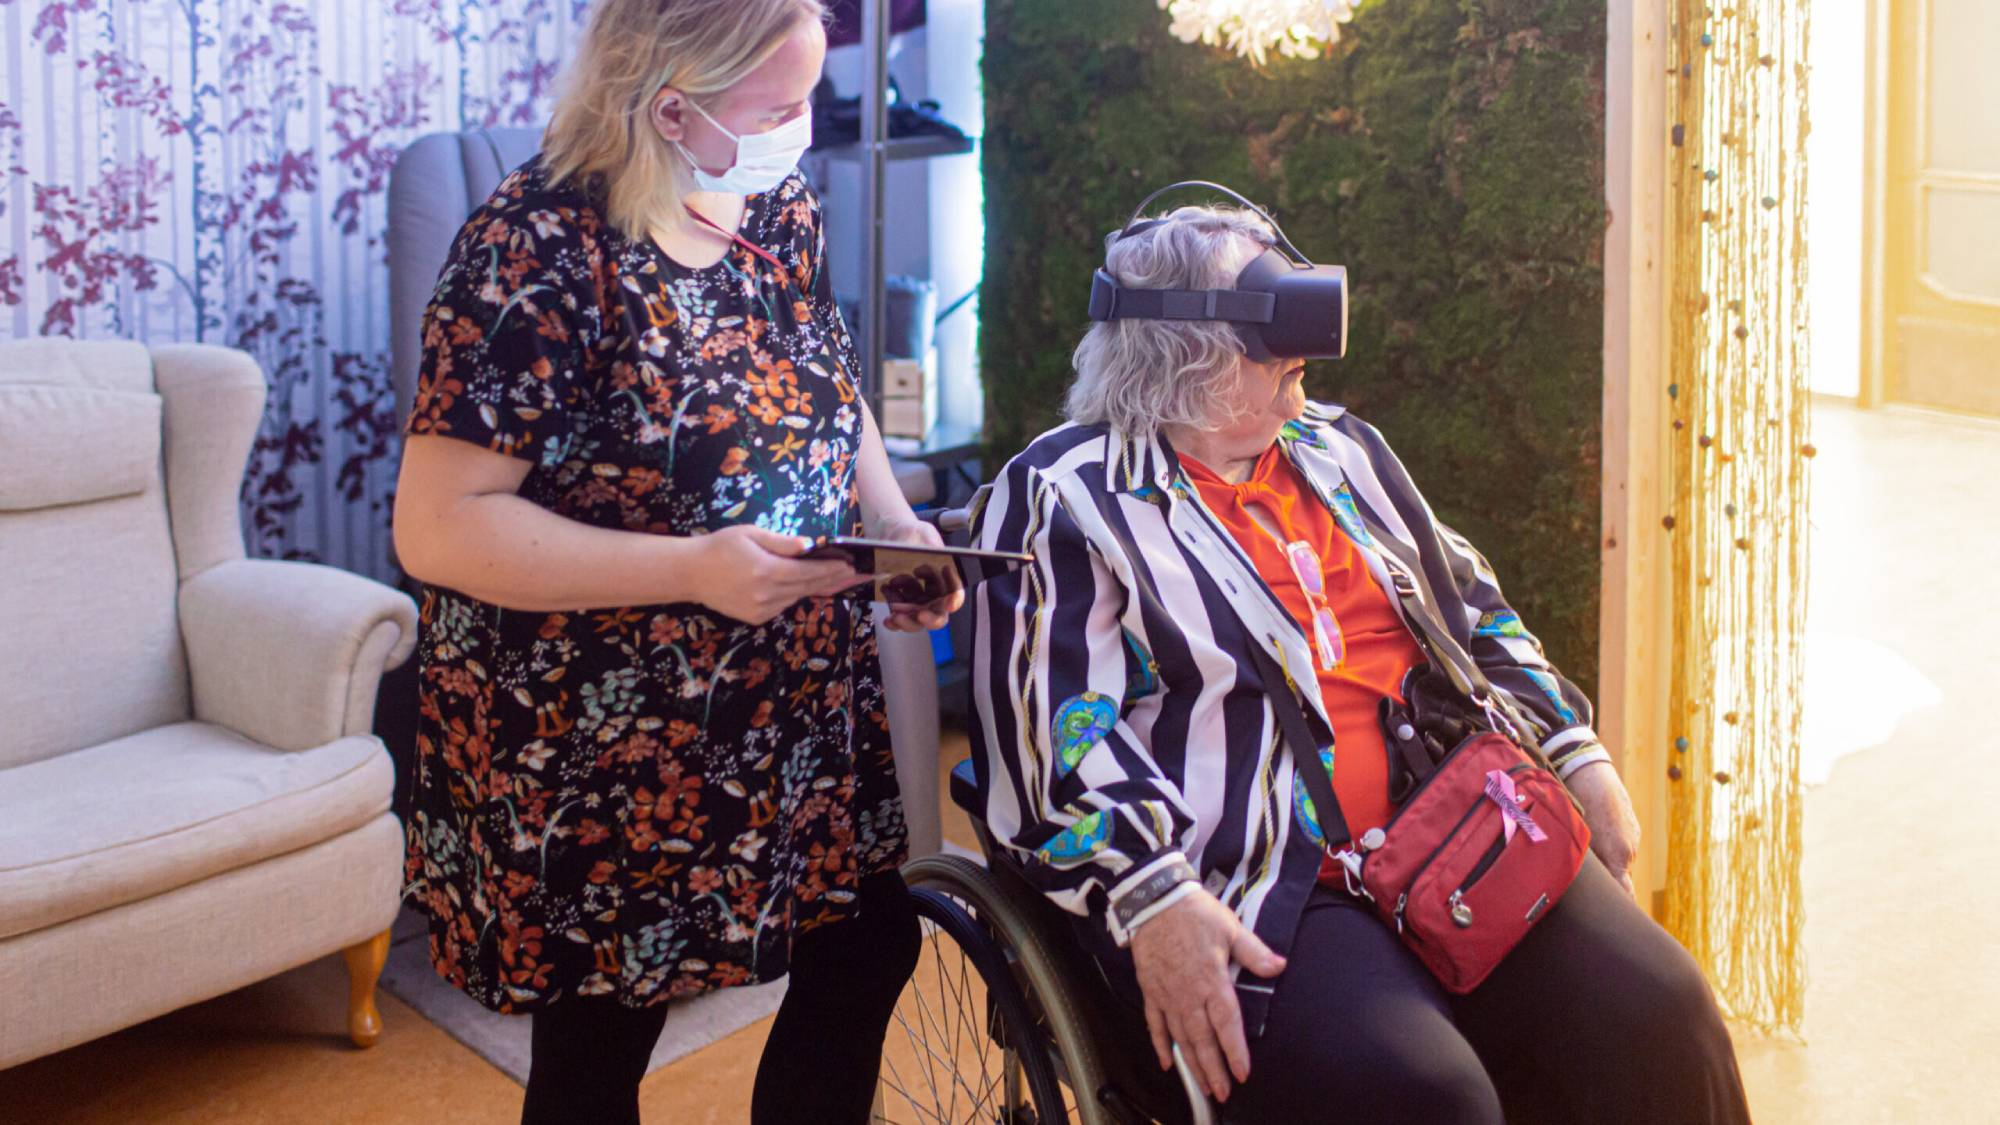 healhcare professional and patient with VR goggles on